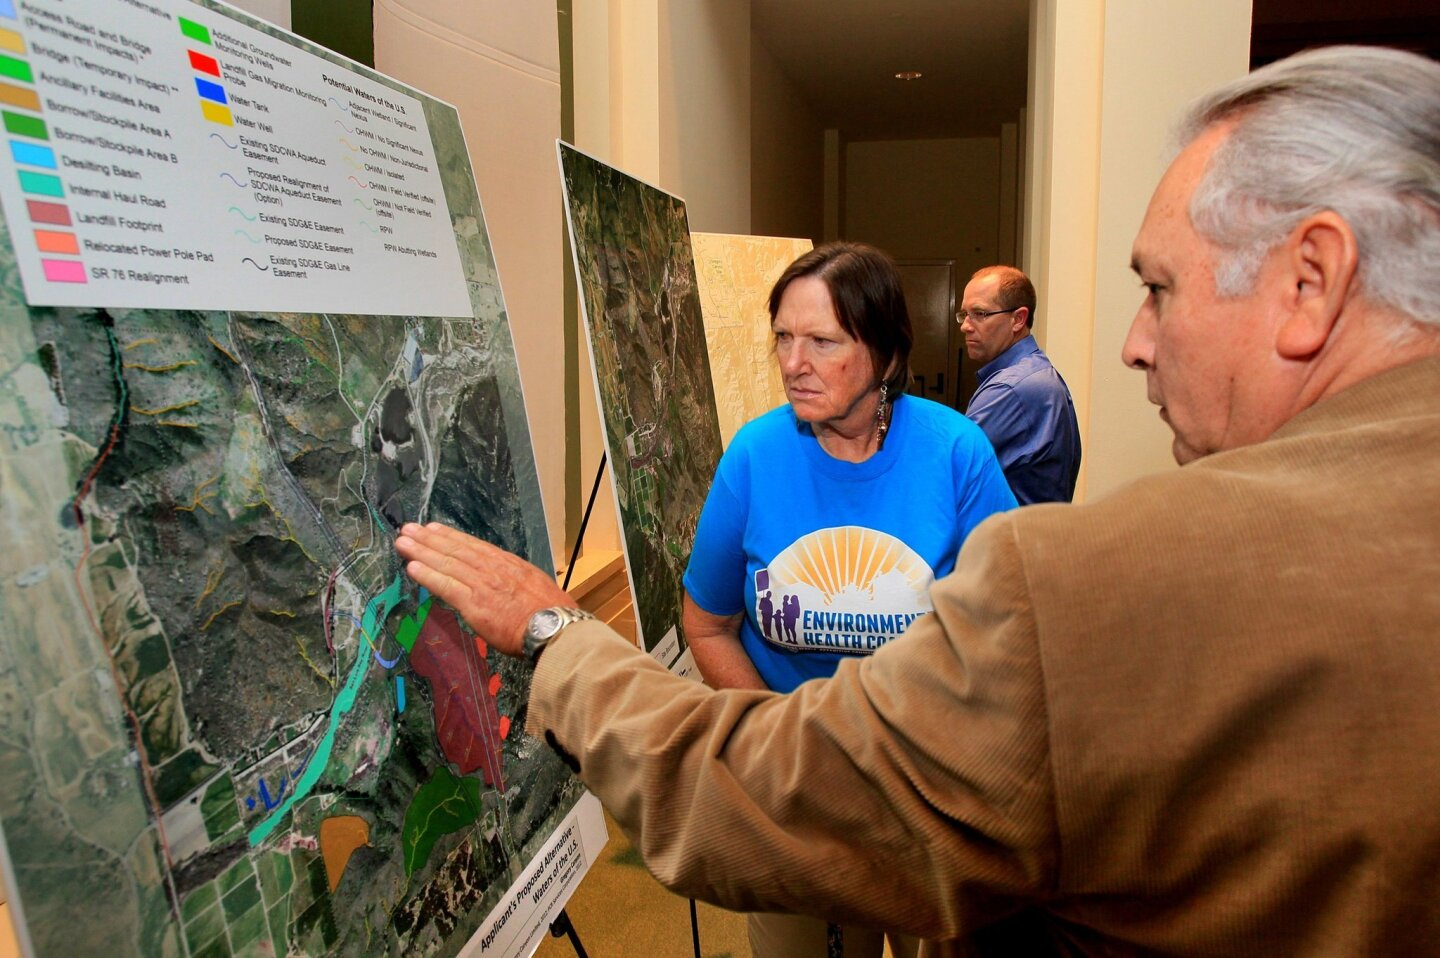 Prior to the U.S. Army Corps of Engineers public hearing concerning the Gregory Canyon Landfill project Debbie Westcott, of the Environmental Health Coalition, and Mel Vernon, Captain of the San Luis Rey Band of Mission Indians, look at a map of the project. Both oppose it.